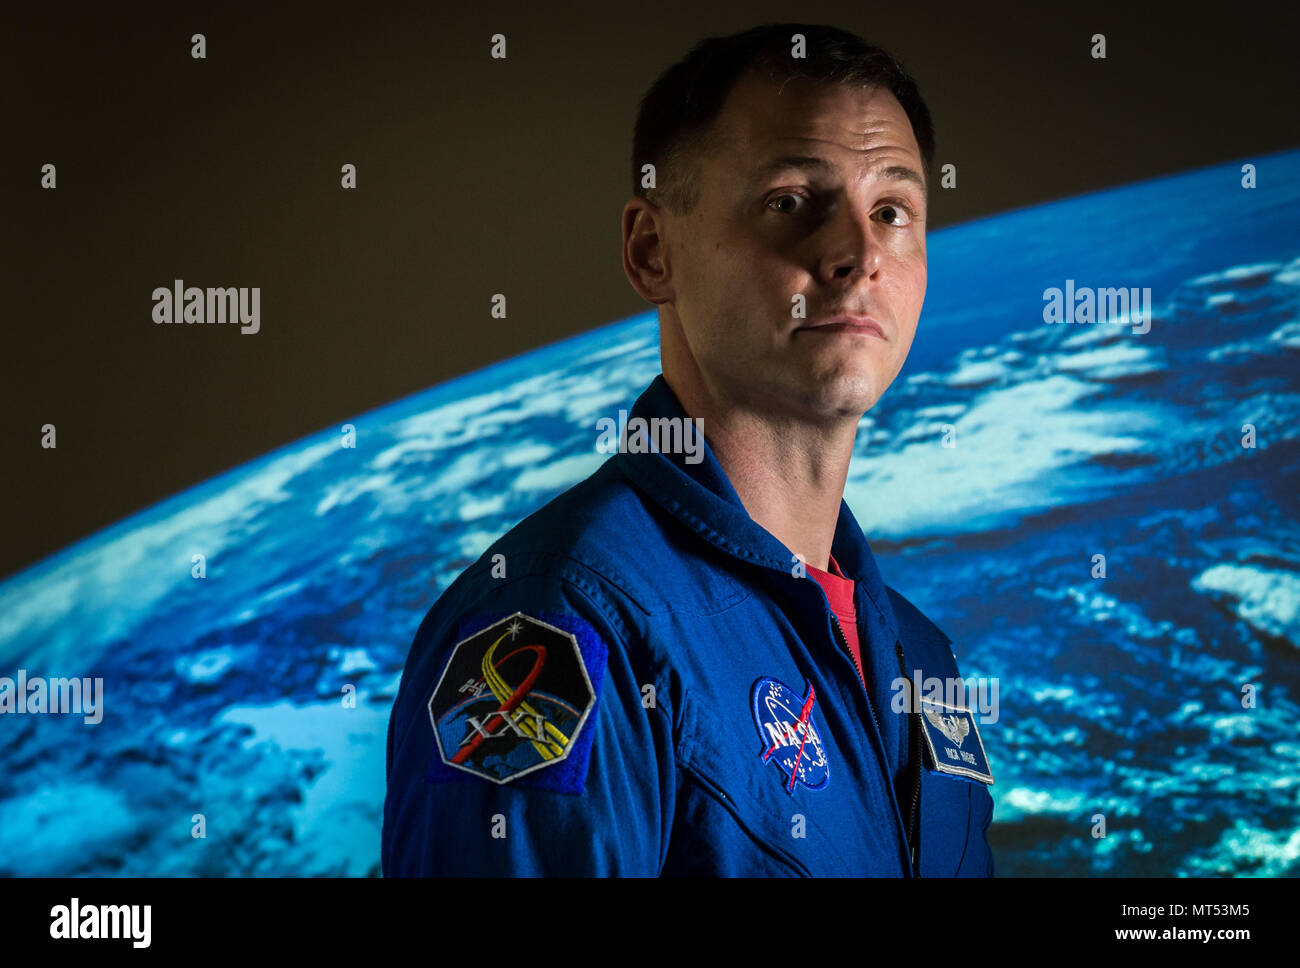 Astronaut Col. Tyler 'Nick' Hague is shown at Johnson Space Flight Center in Houston, Tex., Apr. 26, 2017, during two weeks of training for his scheduled flight to the International Space Station aboard a Russian Soyuz rocket in September of 2018. U.S. Air Force Col. Jack Fischer is currently serving as a flight engineer aboard ISS during a six-month mission. (U.S. Air Force photo by J.M. Eddins Jr.) - Stock Image